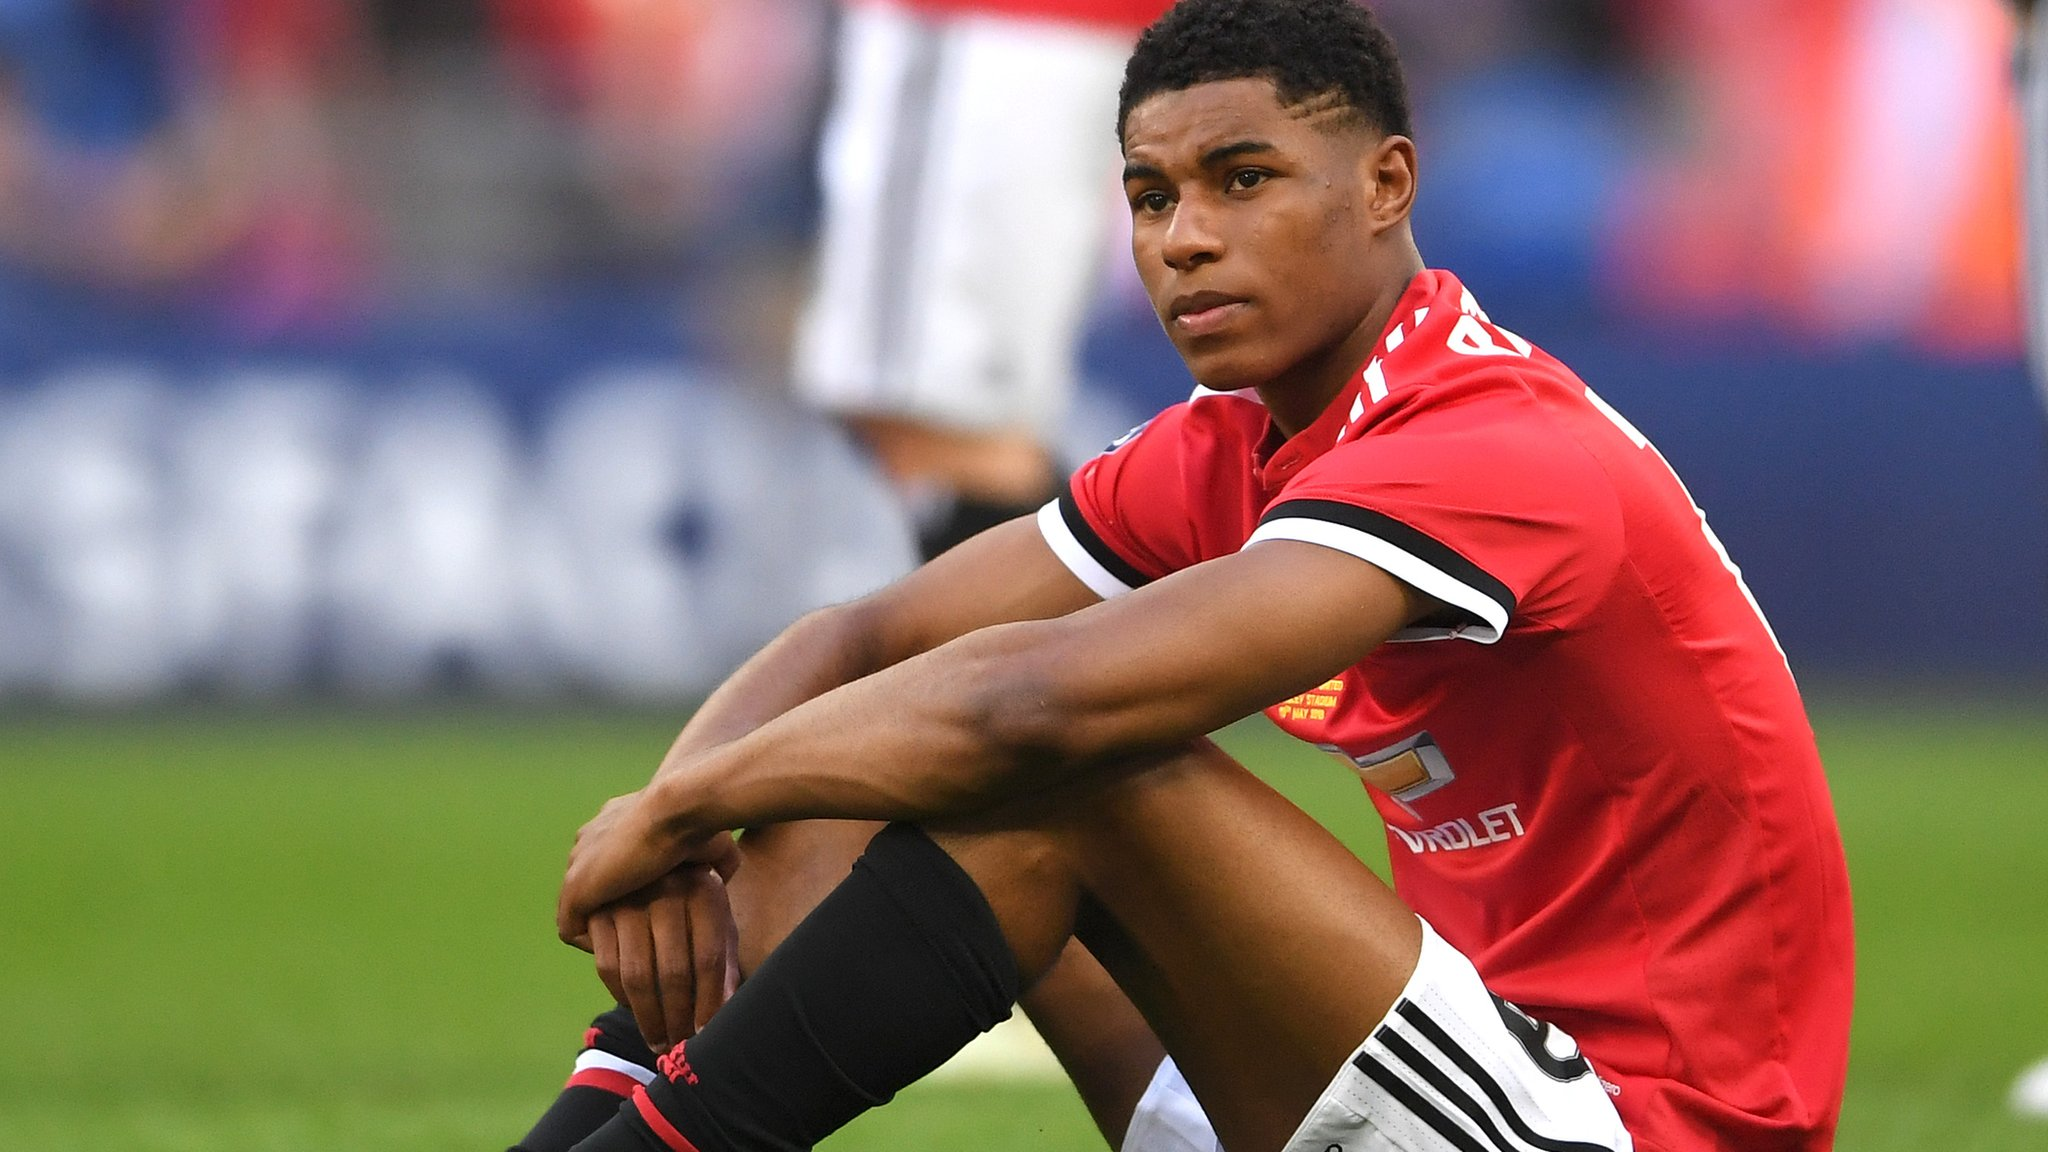 Rashford's tribute to Manchester bombing victims